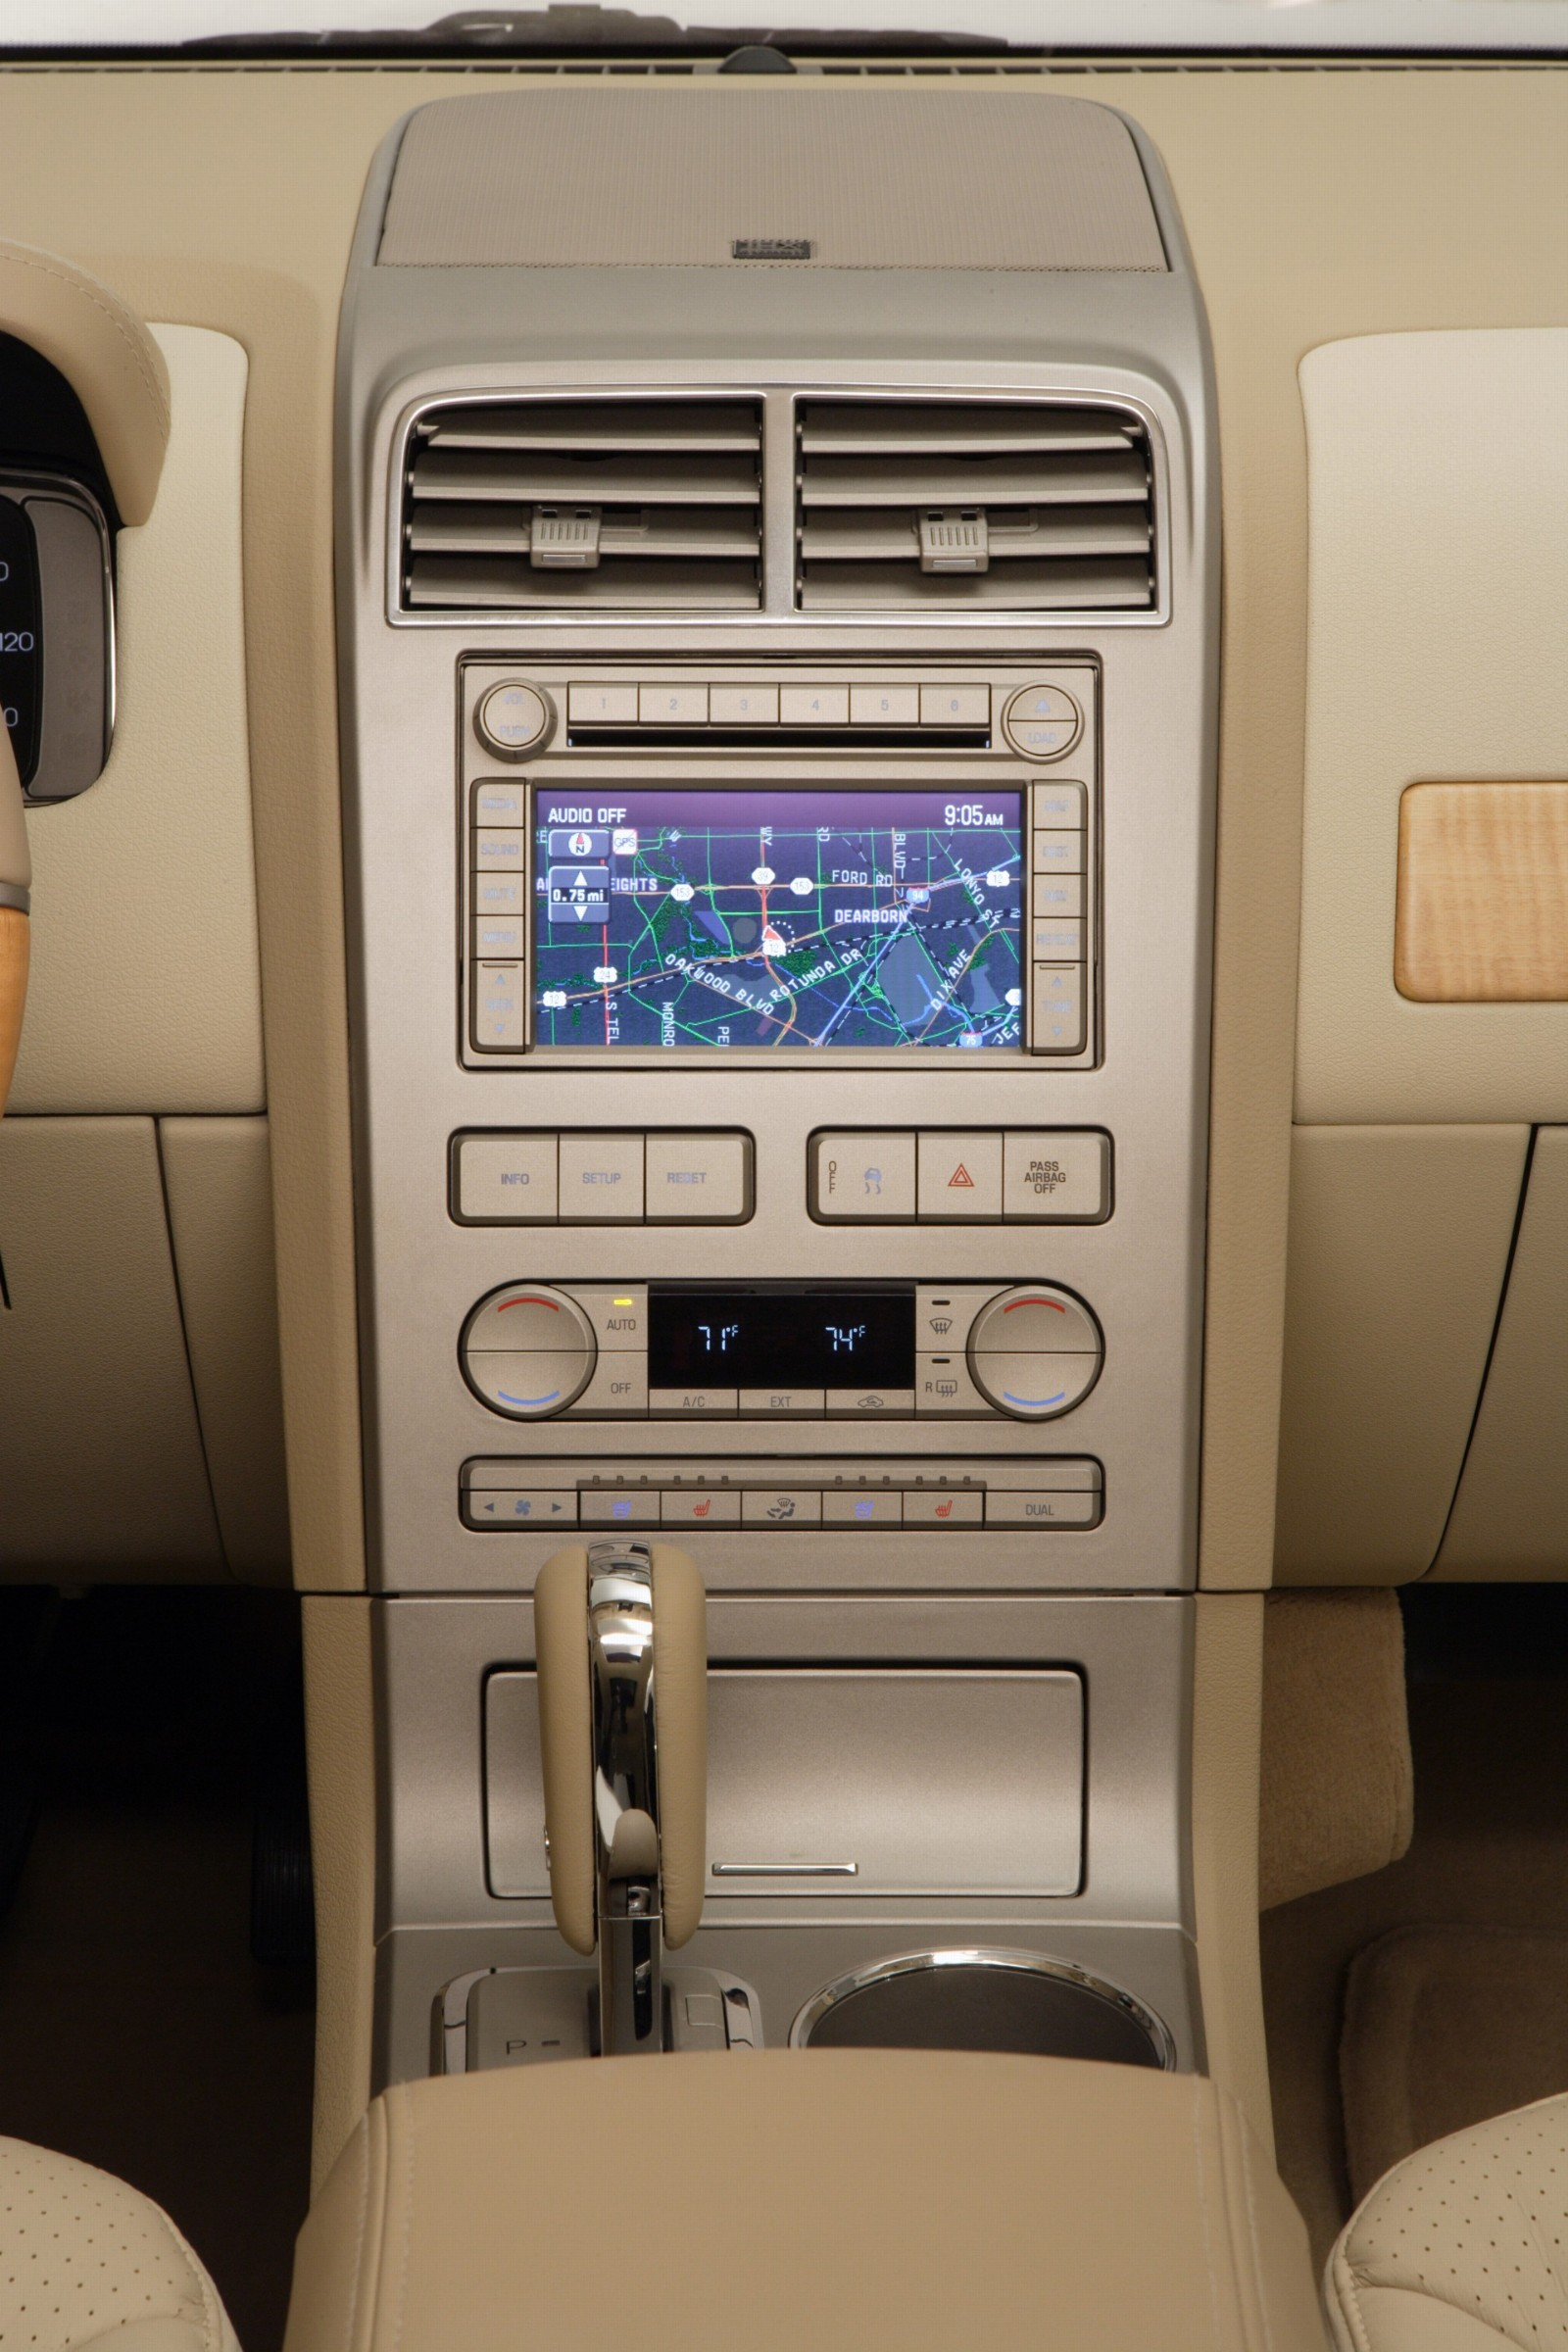 2007 Lincoln MKX Images. Photo: lincoln_MKX_manu-07_i010-1600.jpg